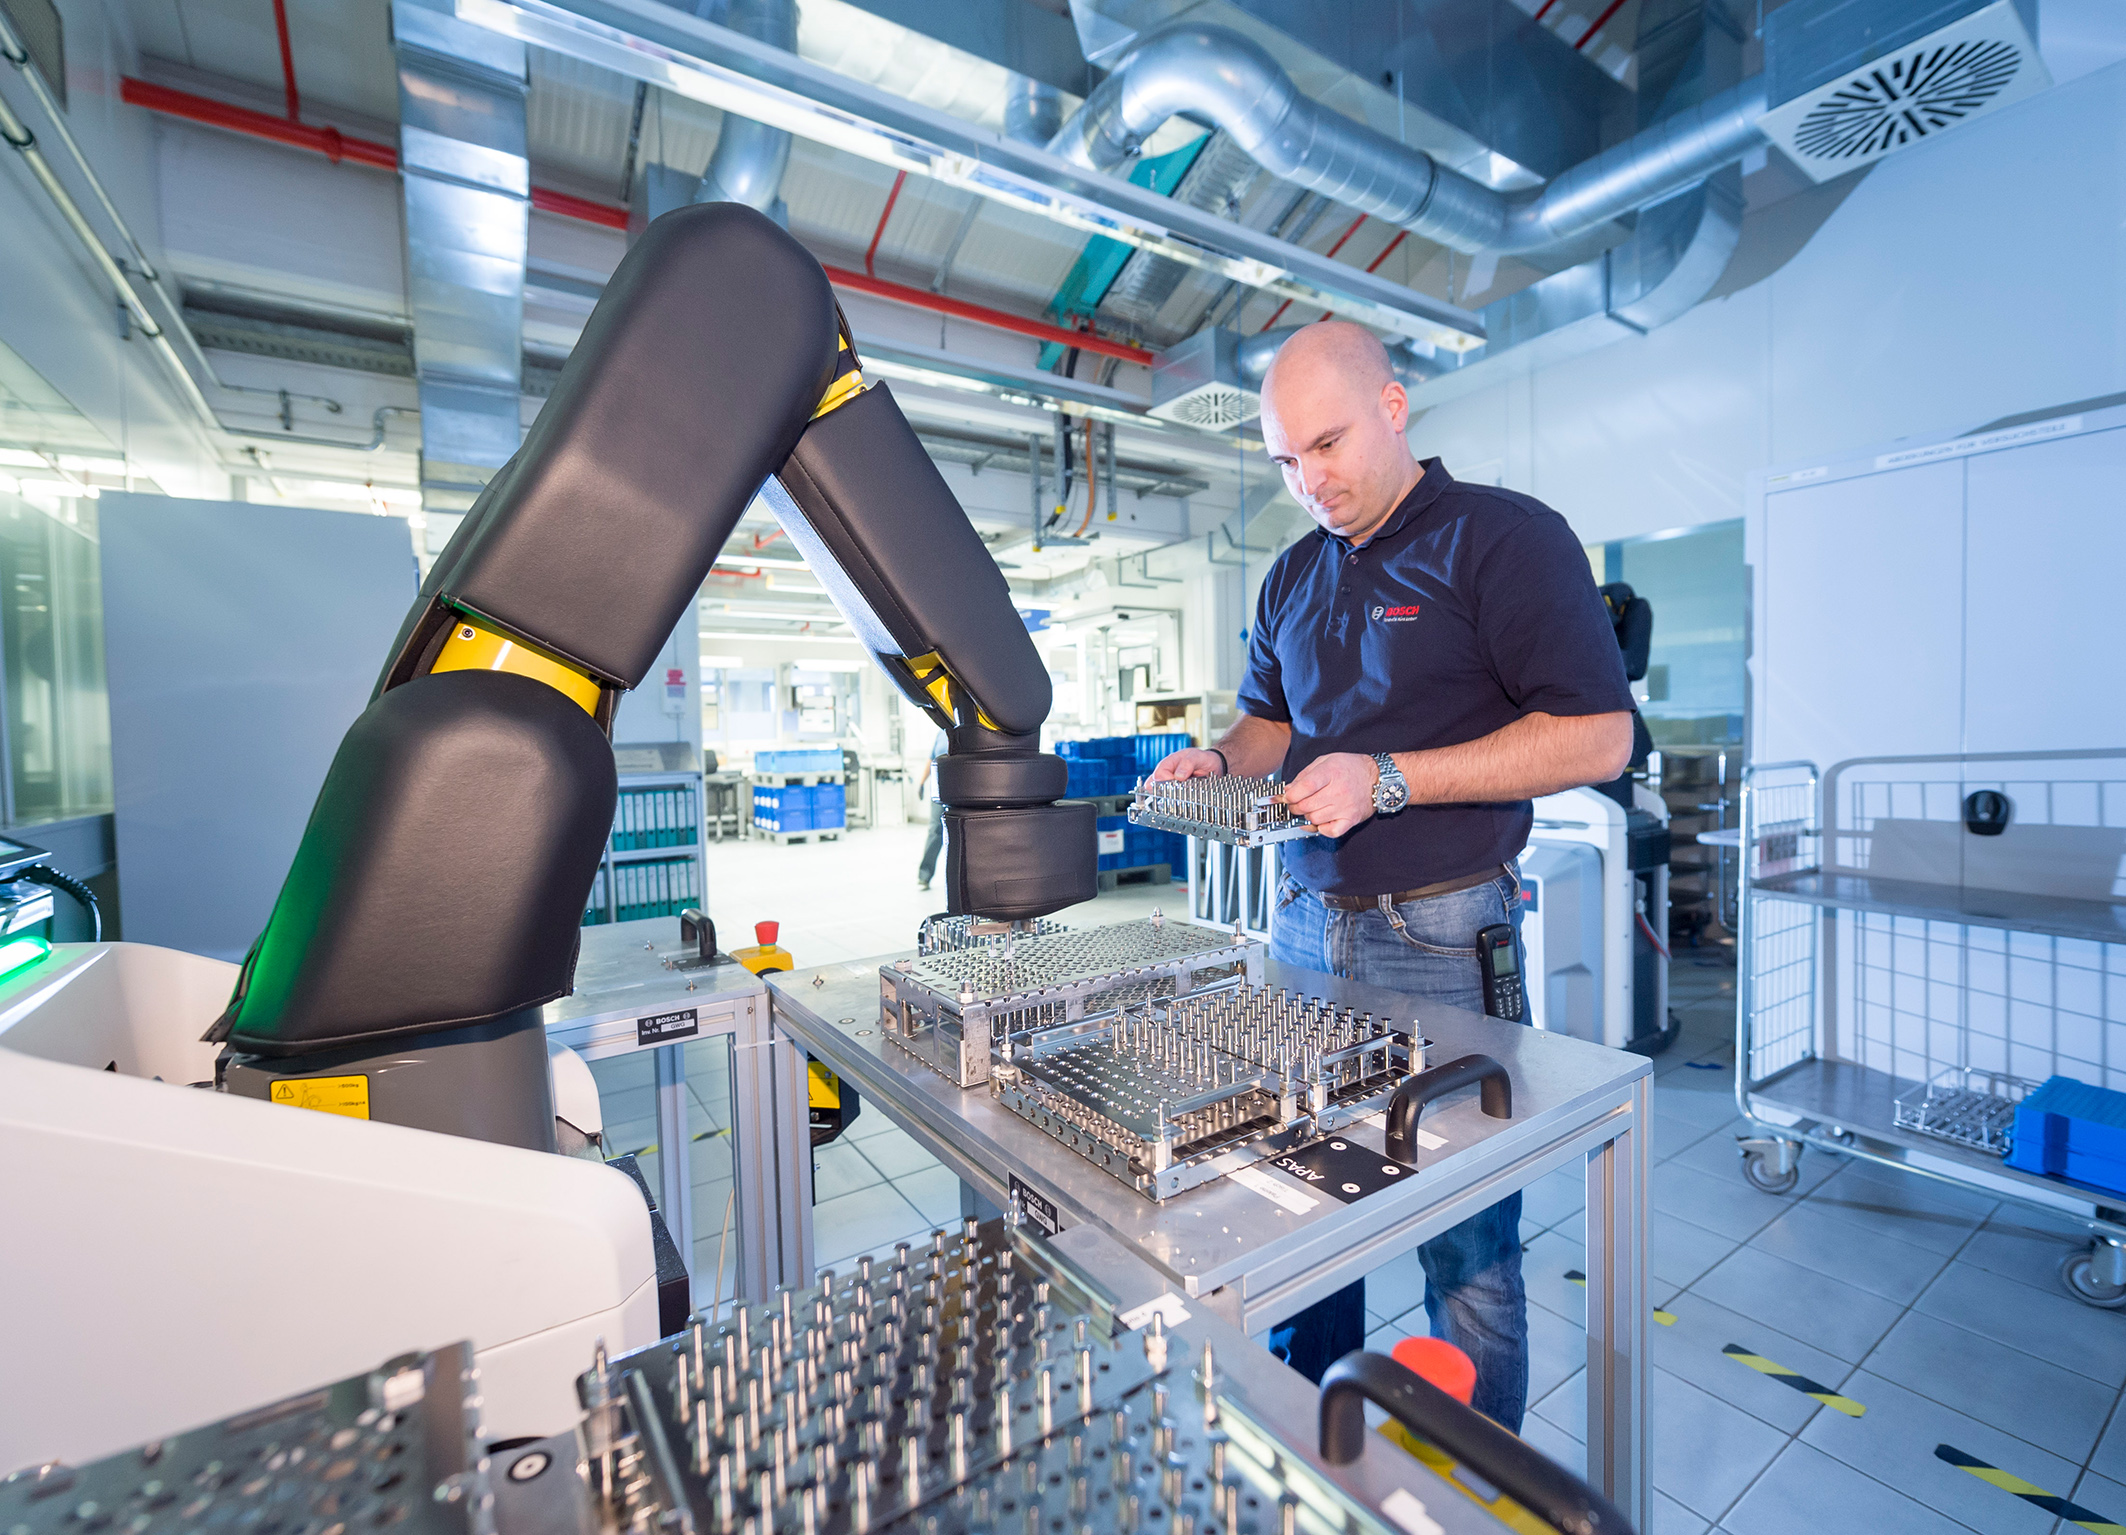 Industry 4.0 at Bosch – automatic production assistant